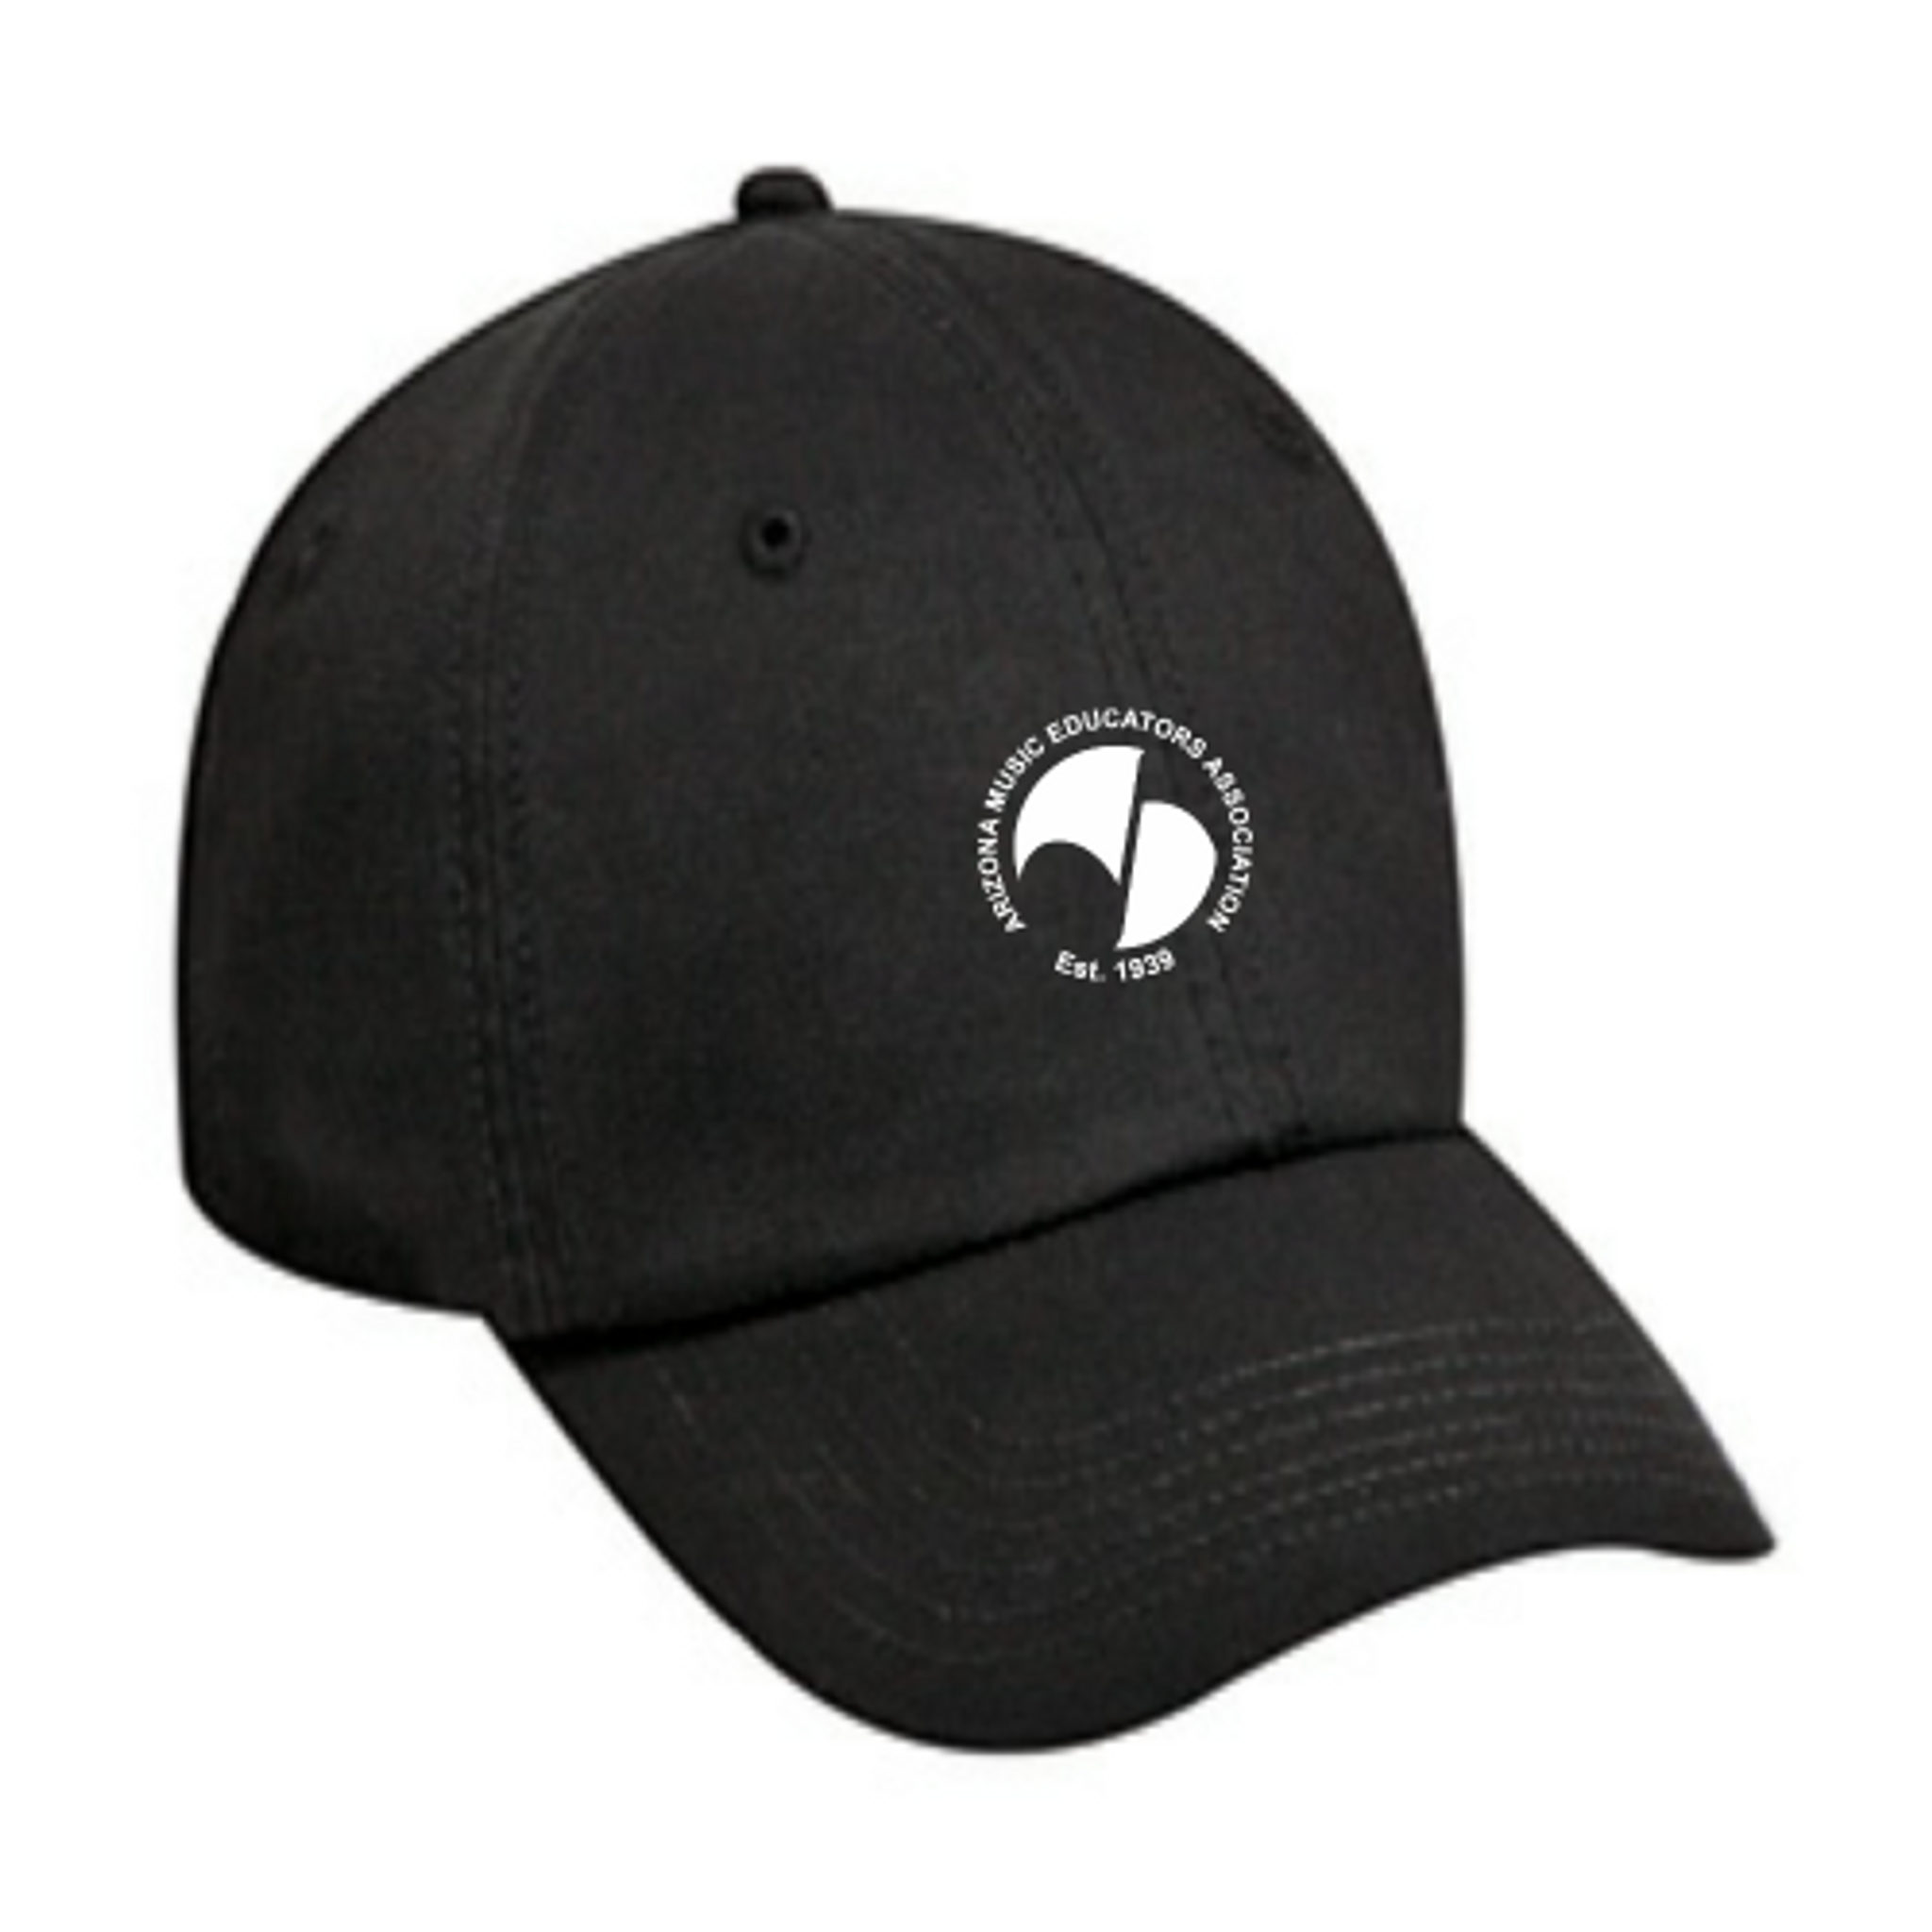 AMEA Black Cotton Twill Cap